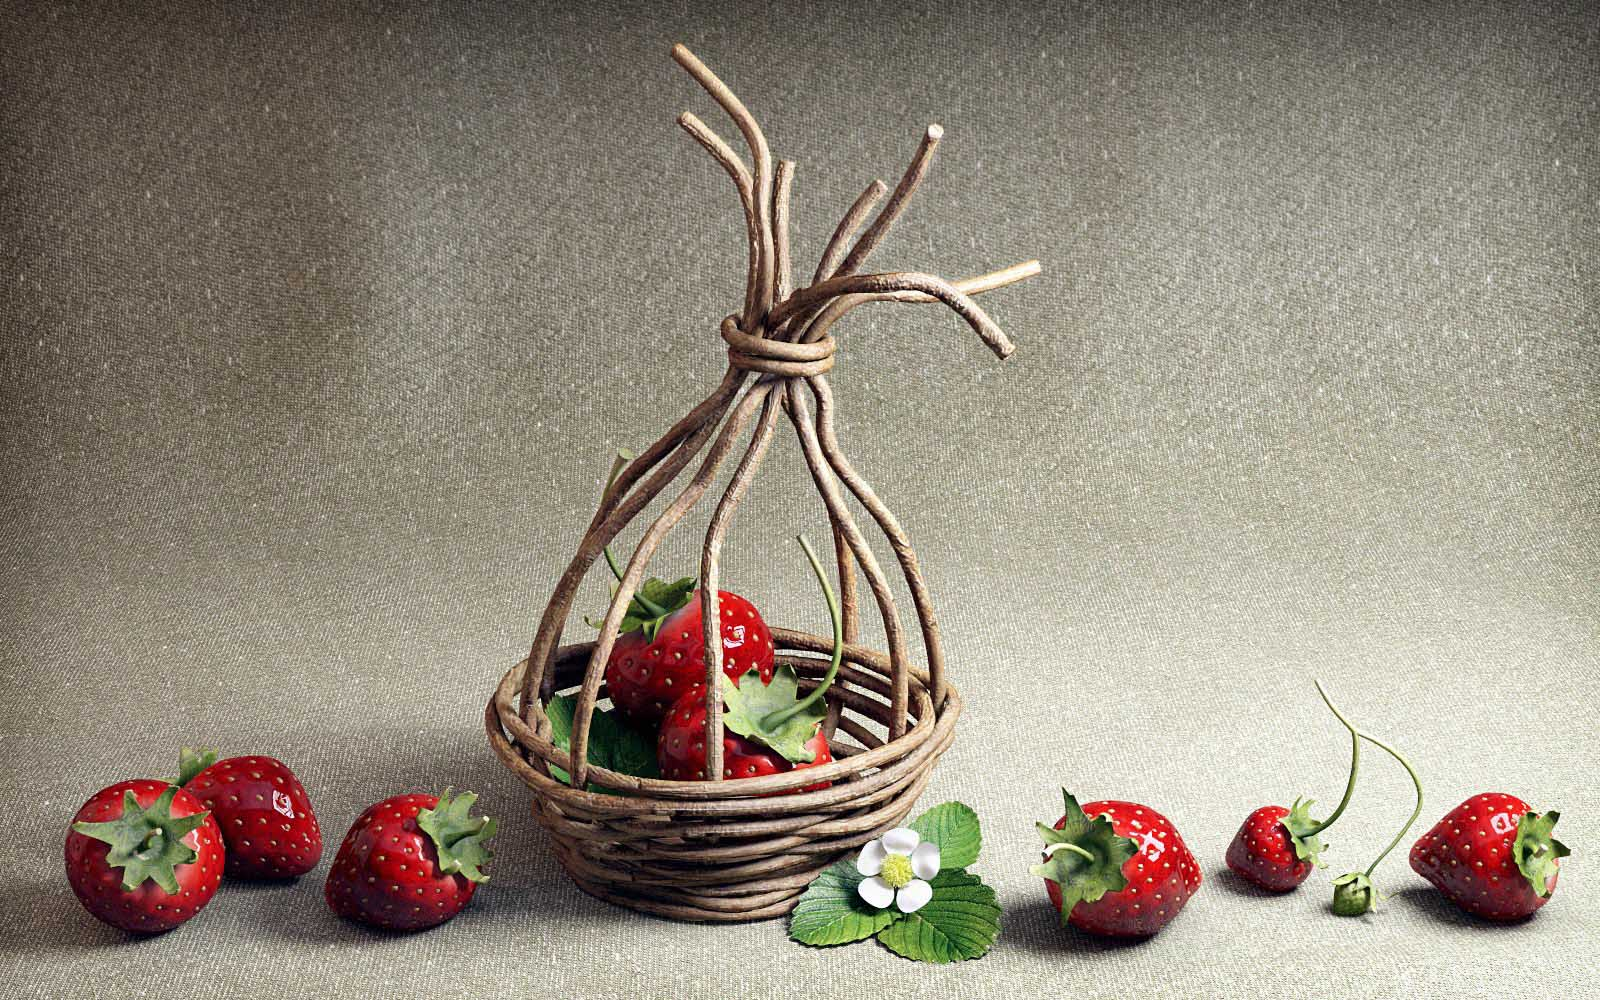 3D visualizations- a render of a Strawberries